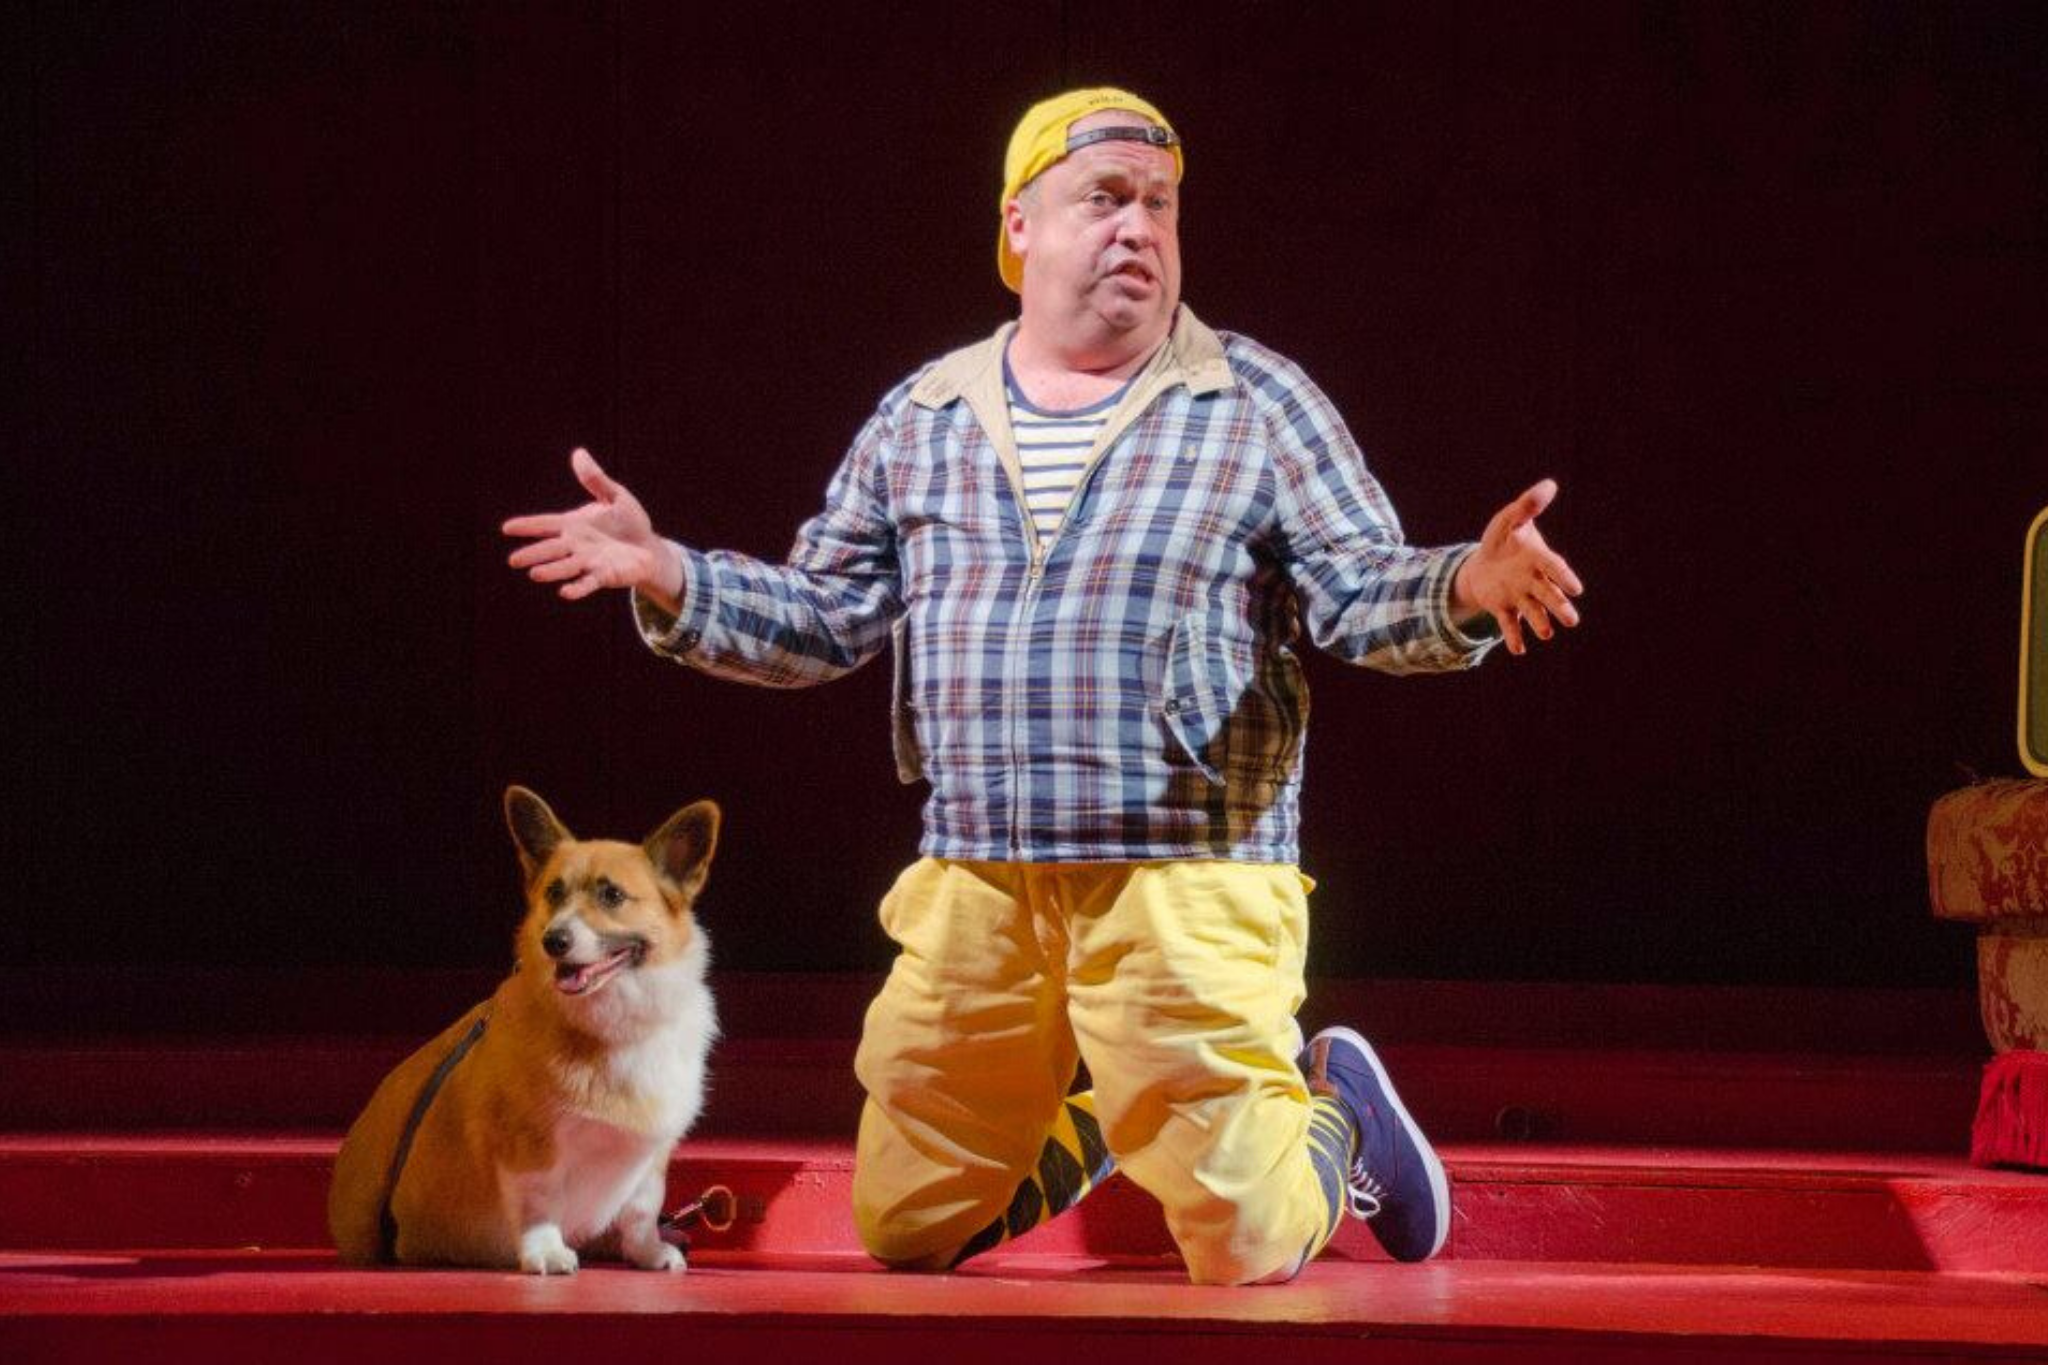 Larry Coen (Launce) and Maestro in The Two Gentlemen of Verona, Shakespeare on the Common 2013-Photo by Andrew Brilliant.